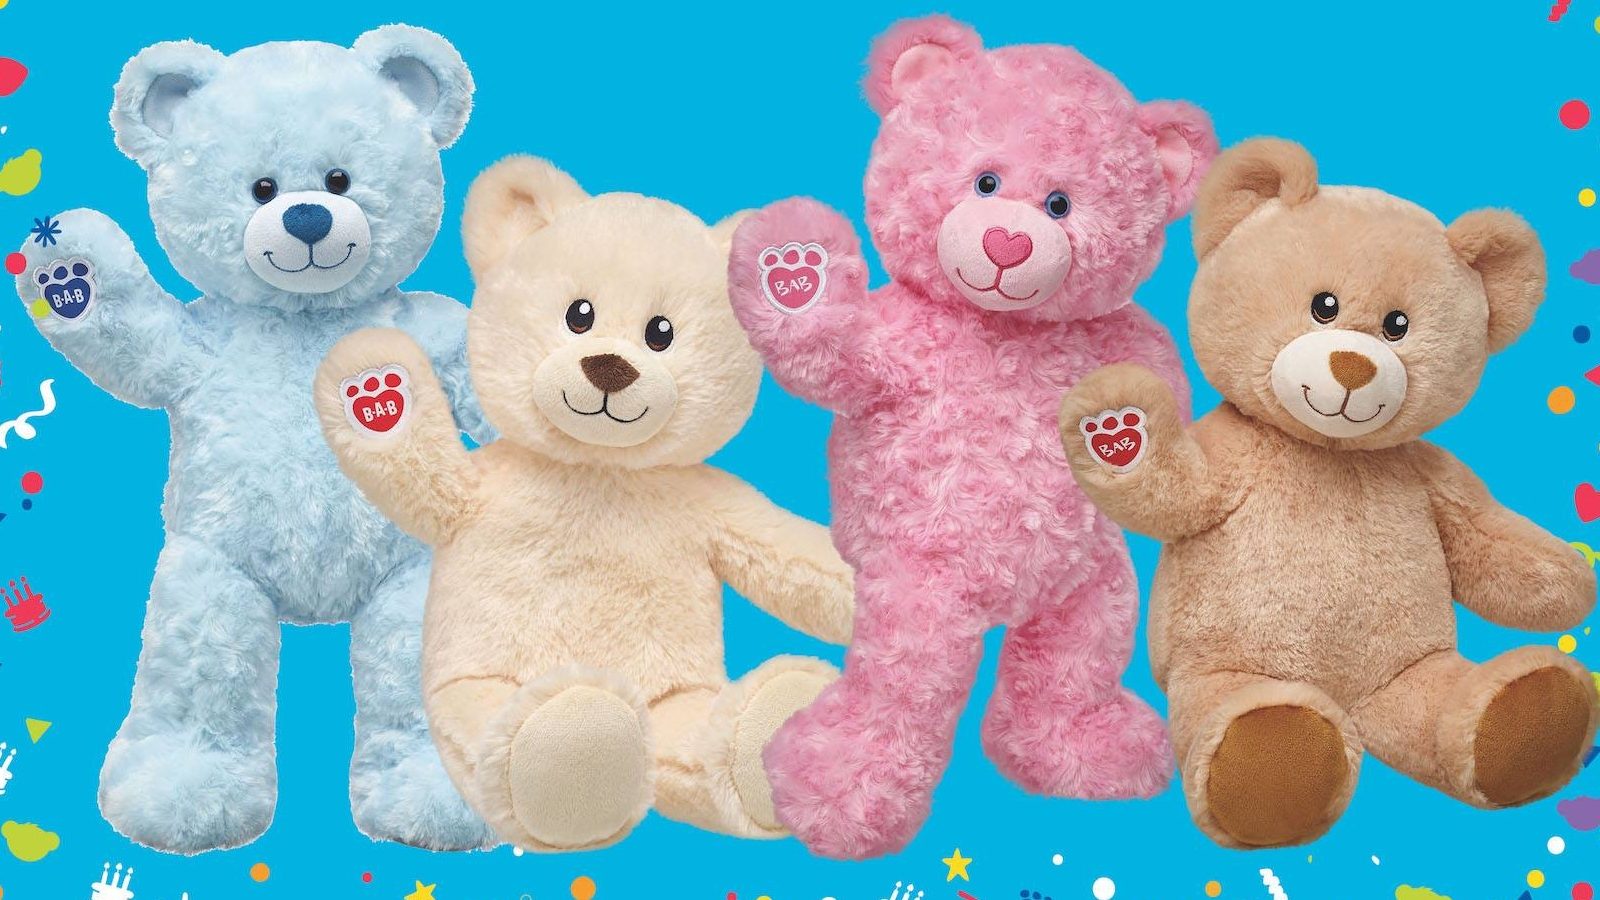 Background image for Bonus Club, the loyalty program of Build-A-Bear.